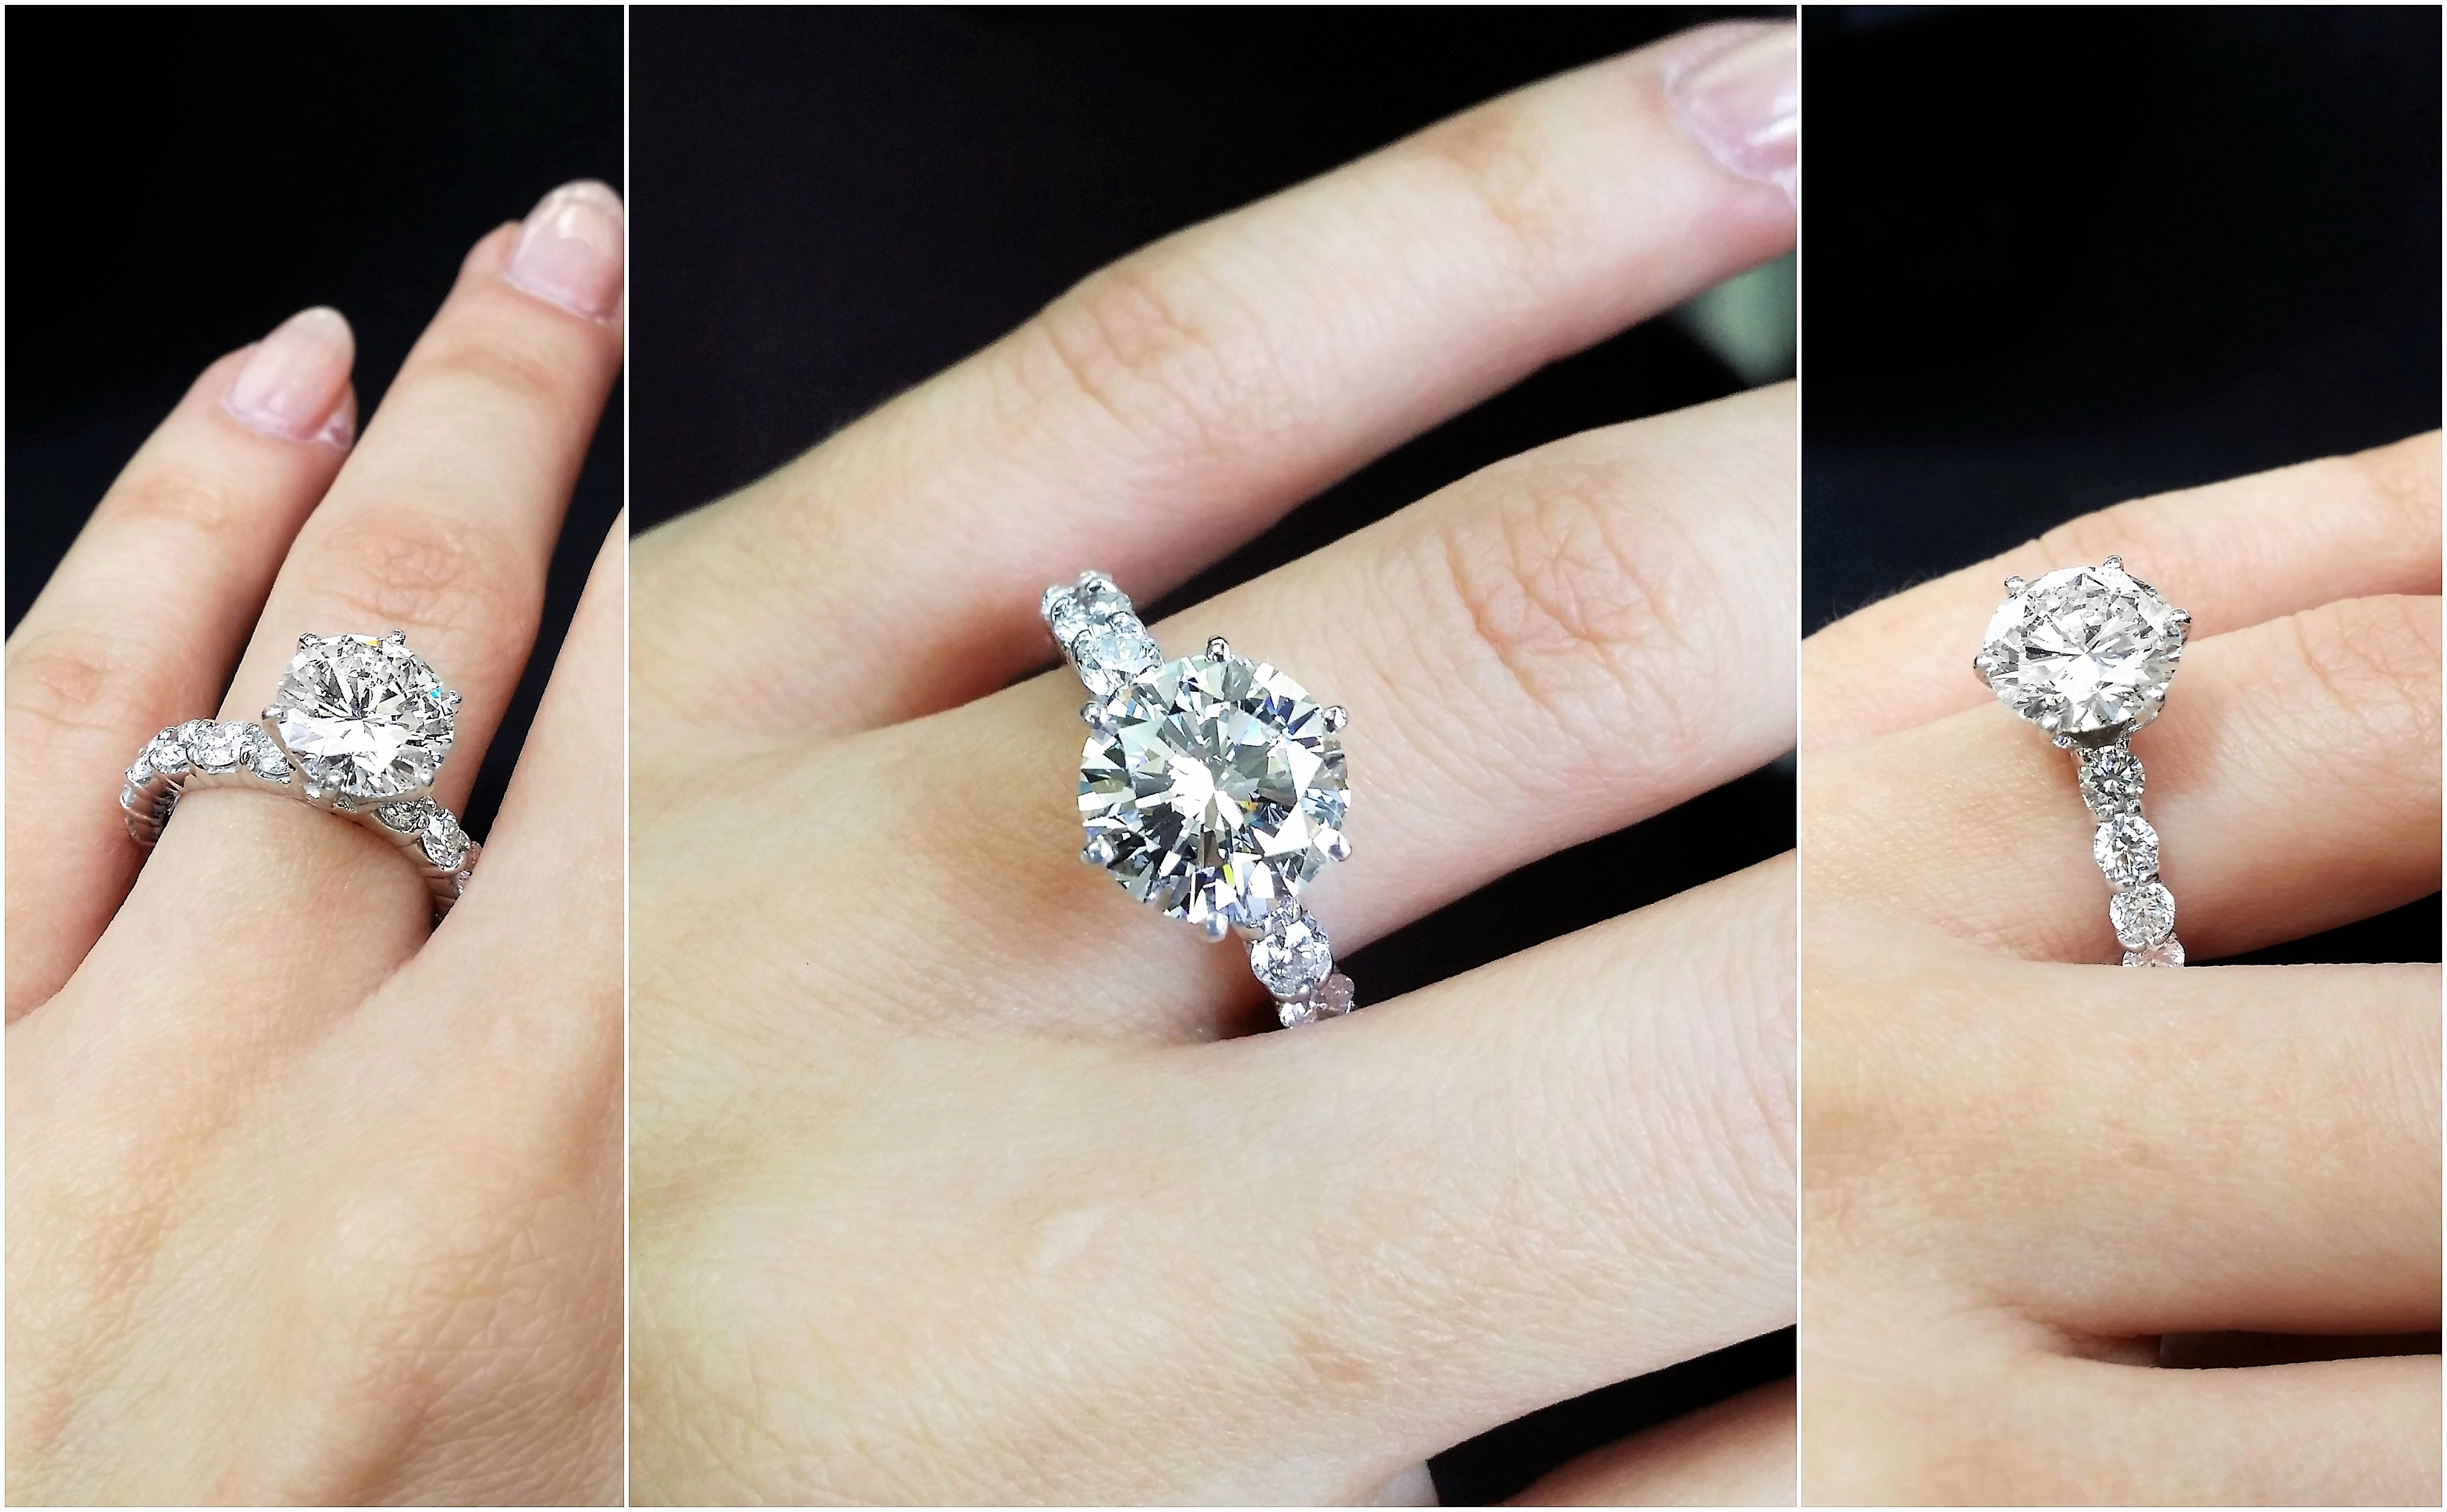 Dream diamond engagement ring with 4.66 carats total,EGL CERTIFIED.